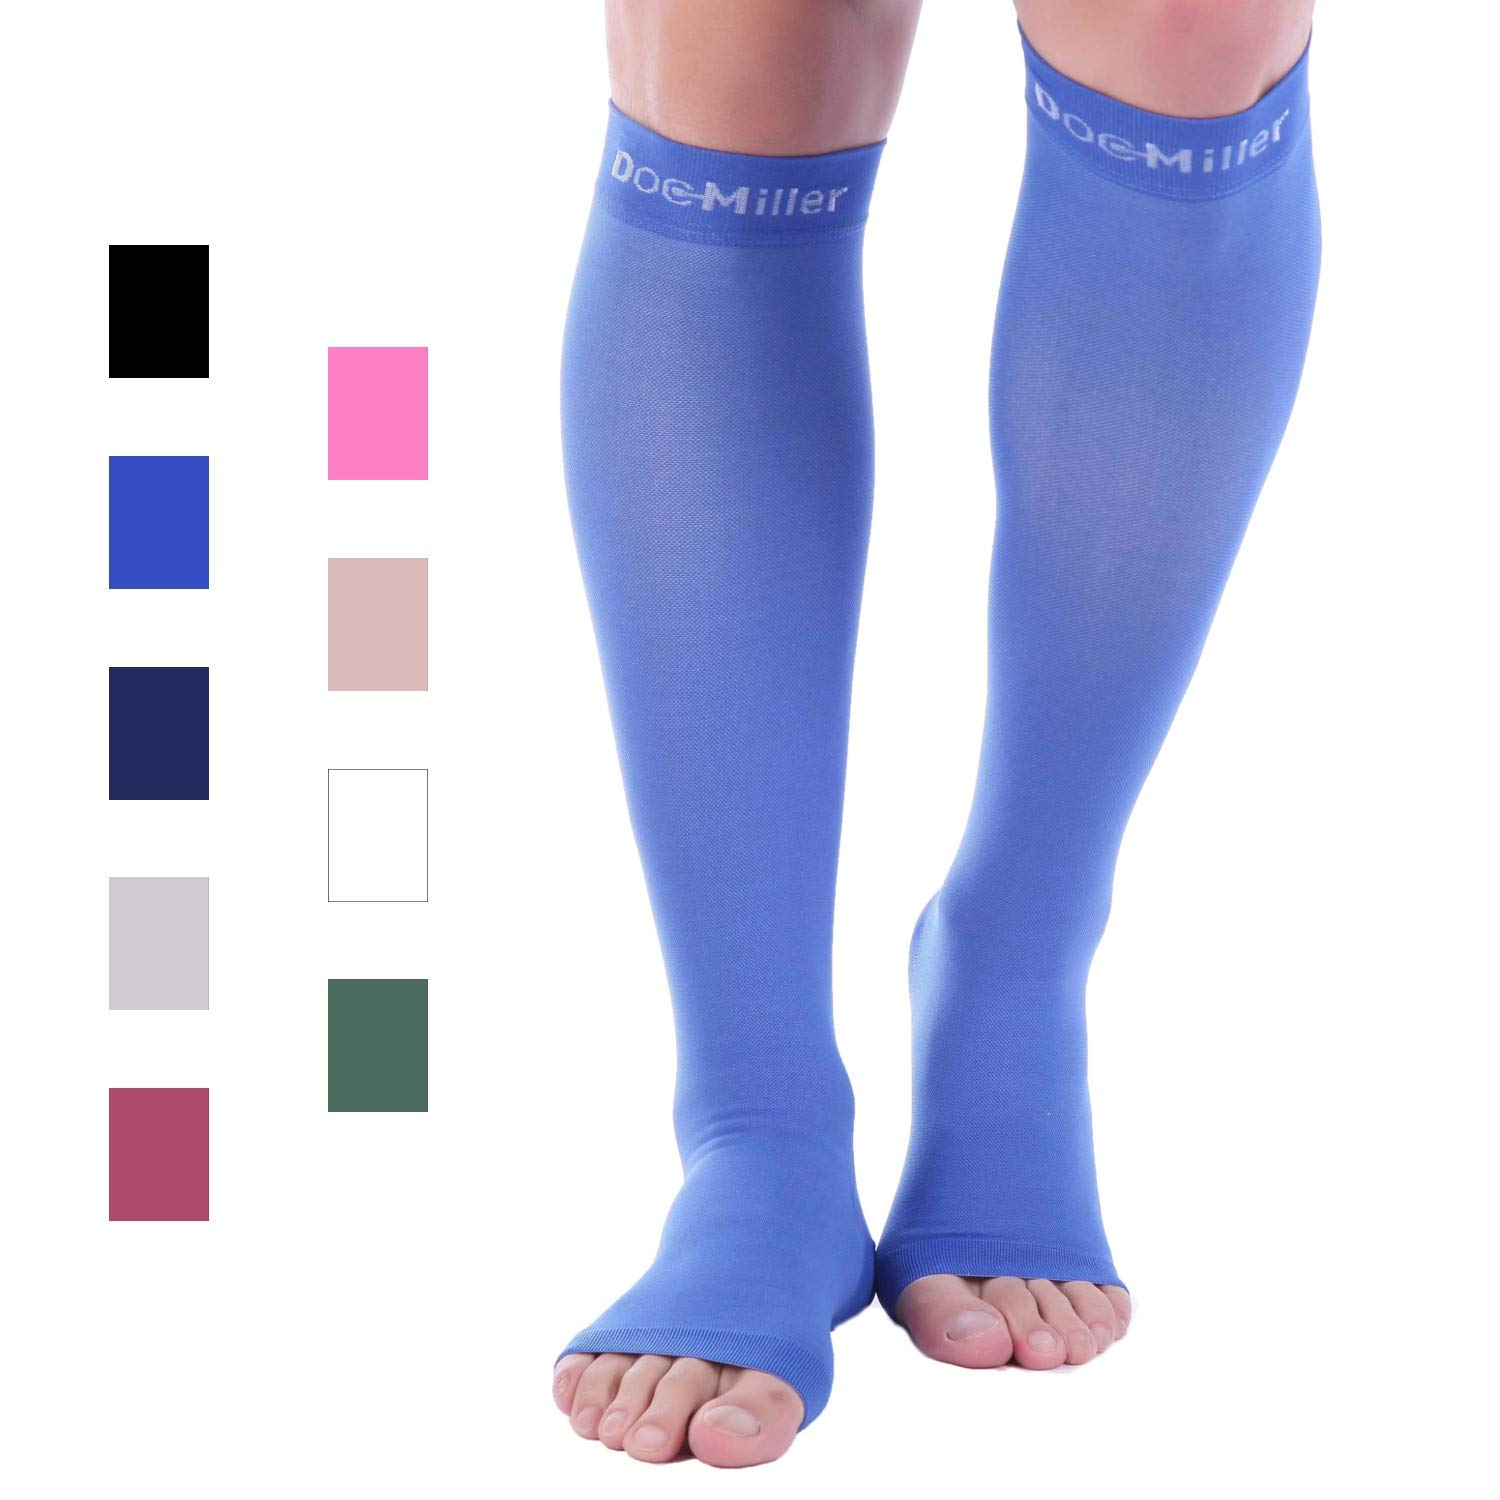 Doc Miller Premium Open Toe Compression Stockings 1 Pair 20-30mmHg Strong Support Graduated Pressure for Sports Running Muscle Recovery Shin Splints Varicose Veins (Blue, Open Toe, Small) by Doc Miller